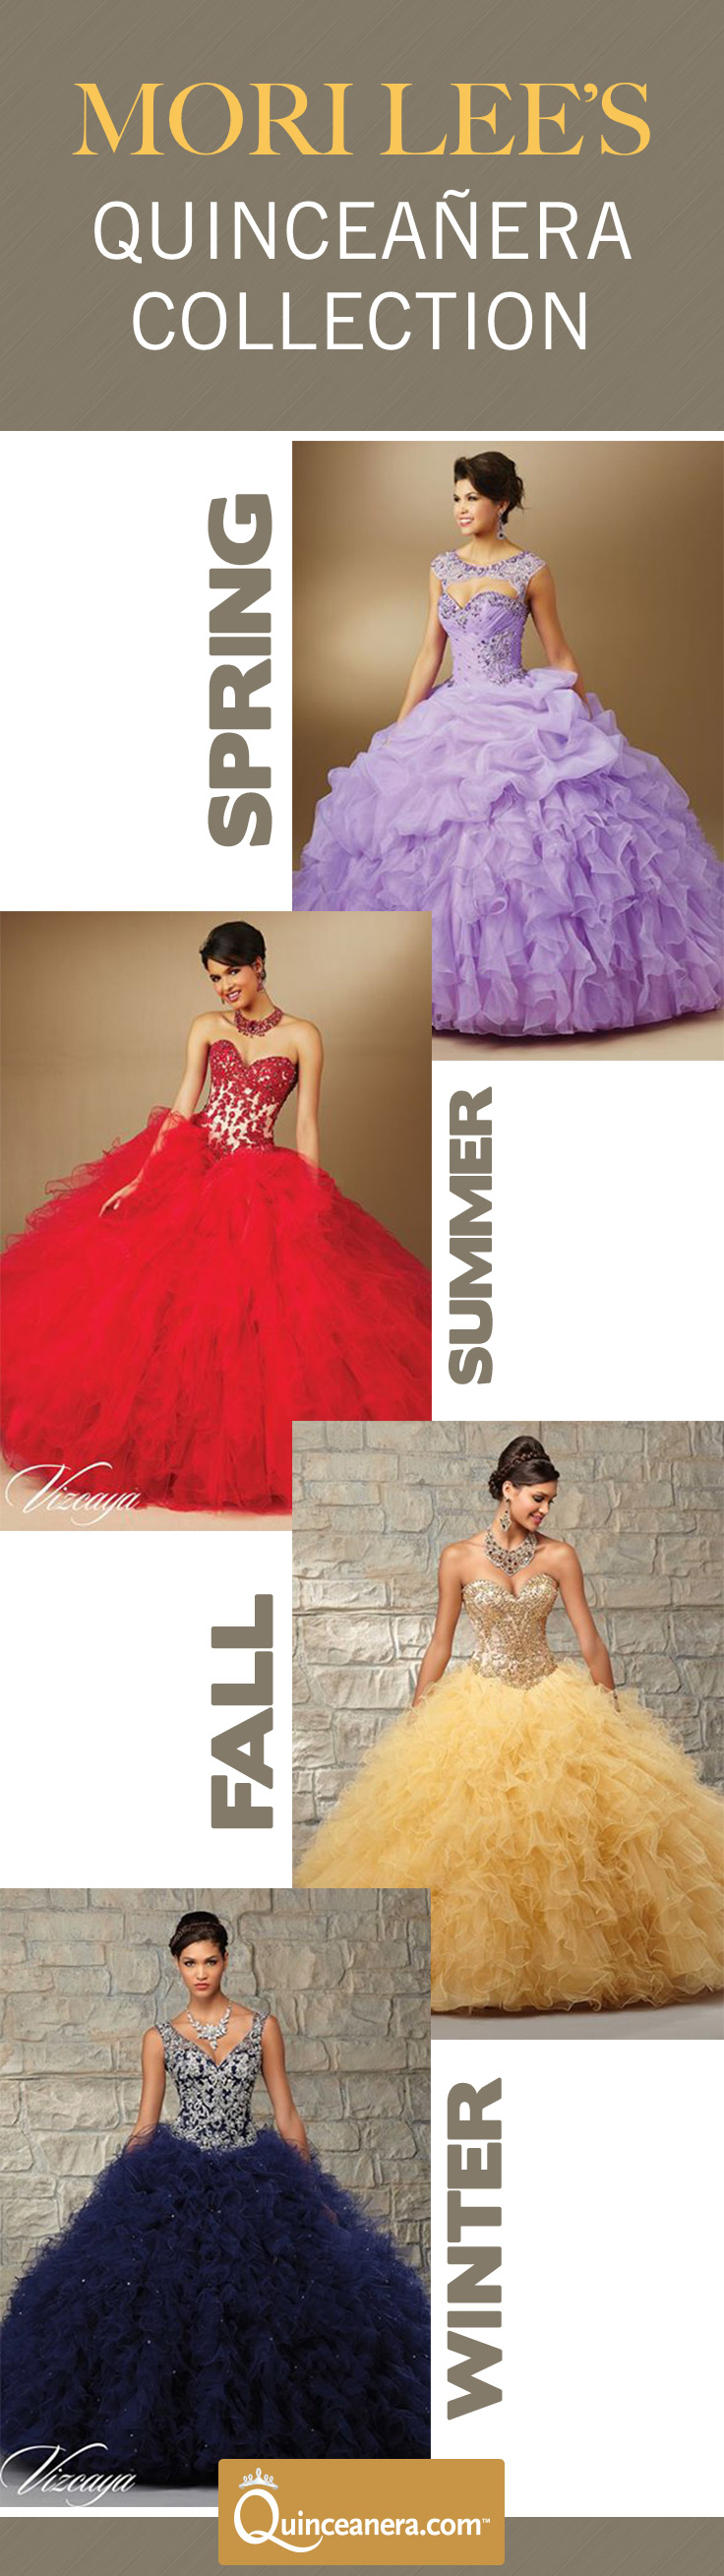 Which season is your quinceanera falling in? In case you didn't already know, Mori Lee's Quinceanera collection is Vizcaya. The following are the latest Mori Lee Quinceanera dresses that are even more impressive   Designer Dresses   Quinceanera Dresses  